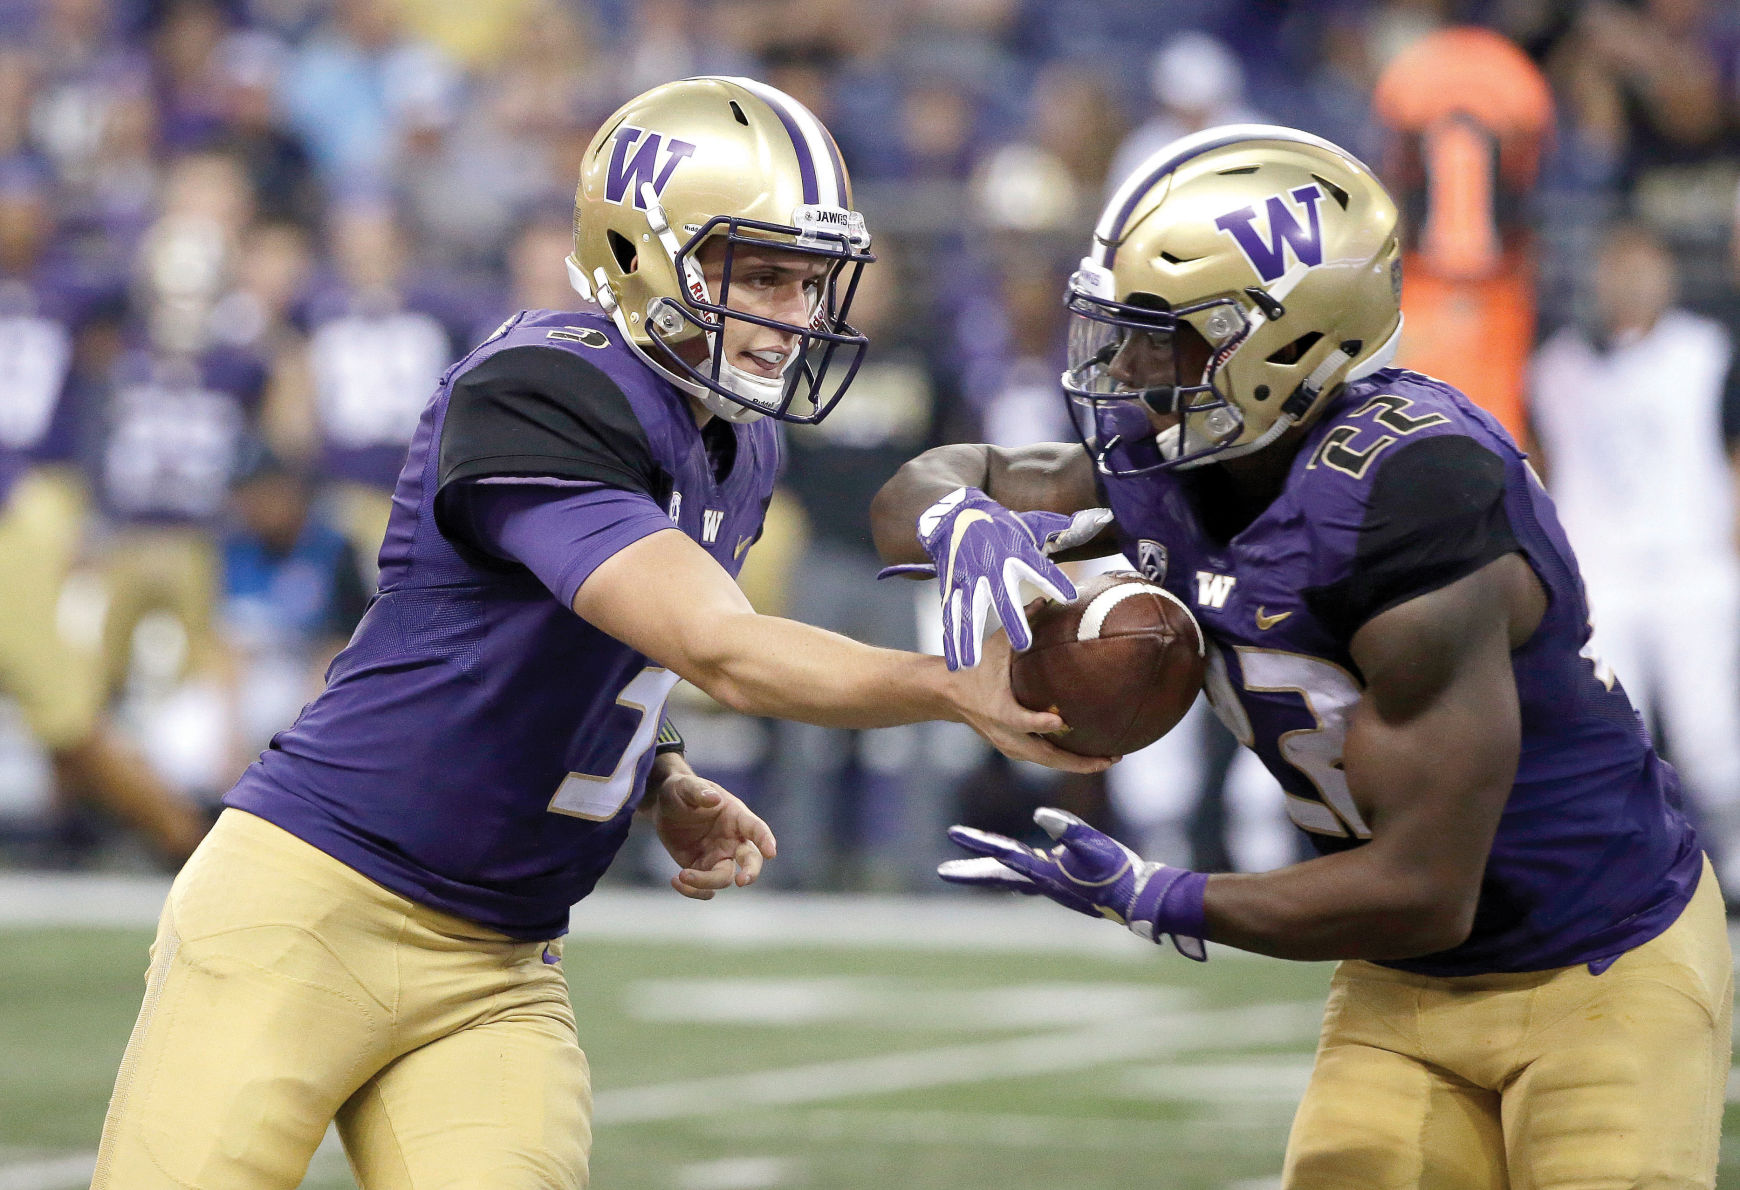 Ralph D. Russo Predicts Colorado Will Upset No. 7 Washington